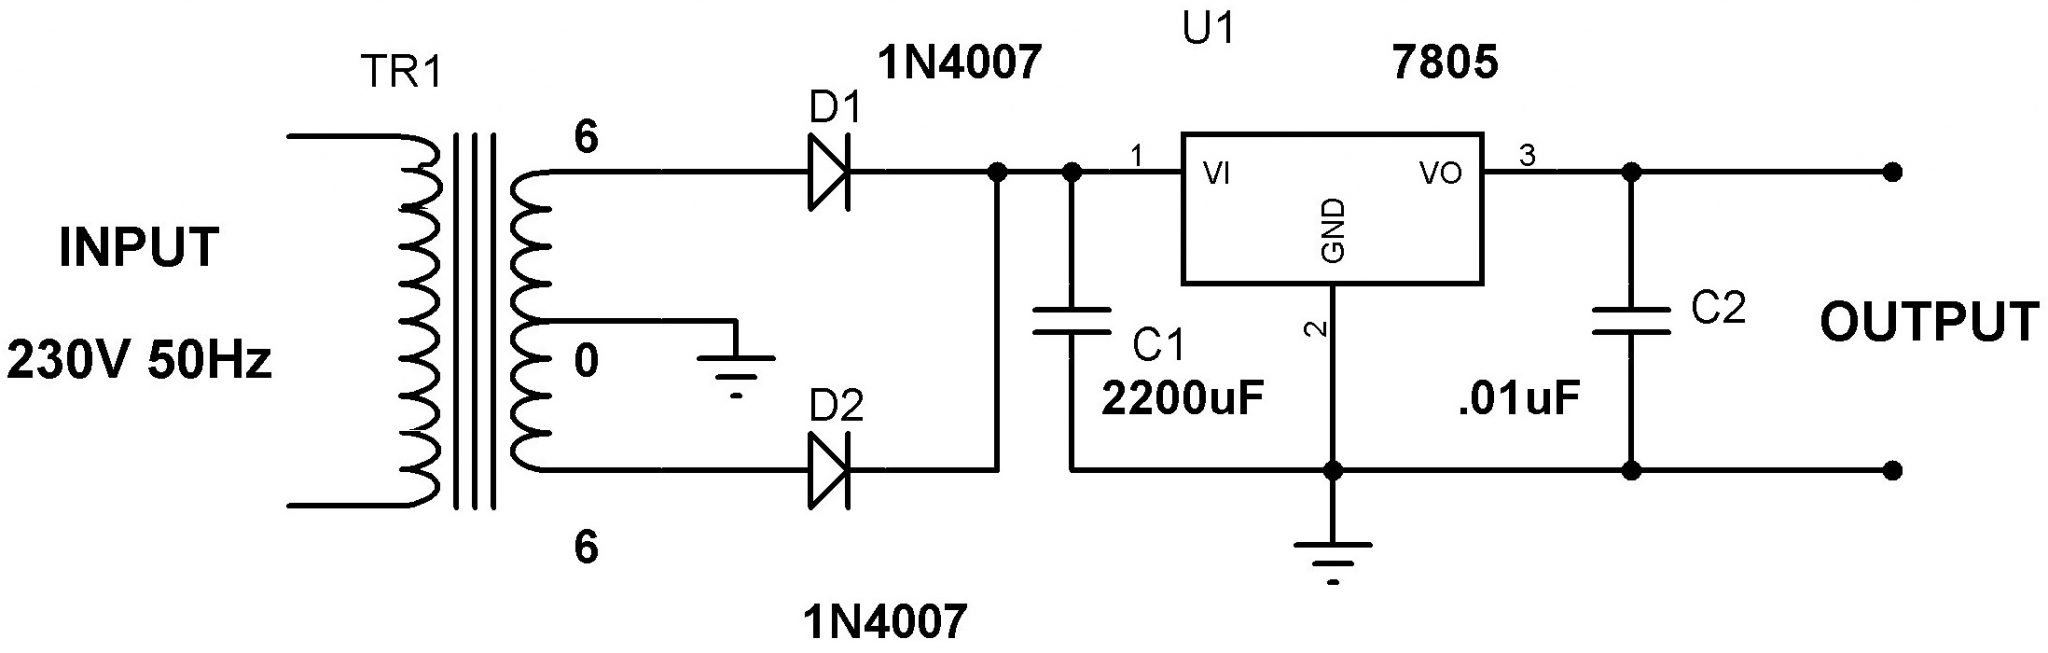 5v Power Supply Using 7805 Voltage Regulator With Design High Led Wiring Diagram Circuit